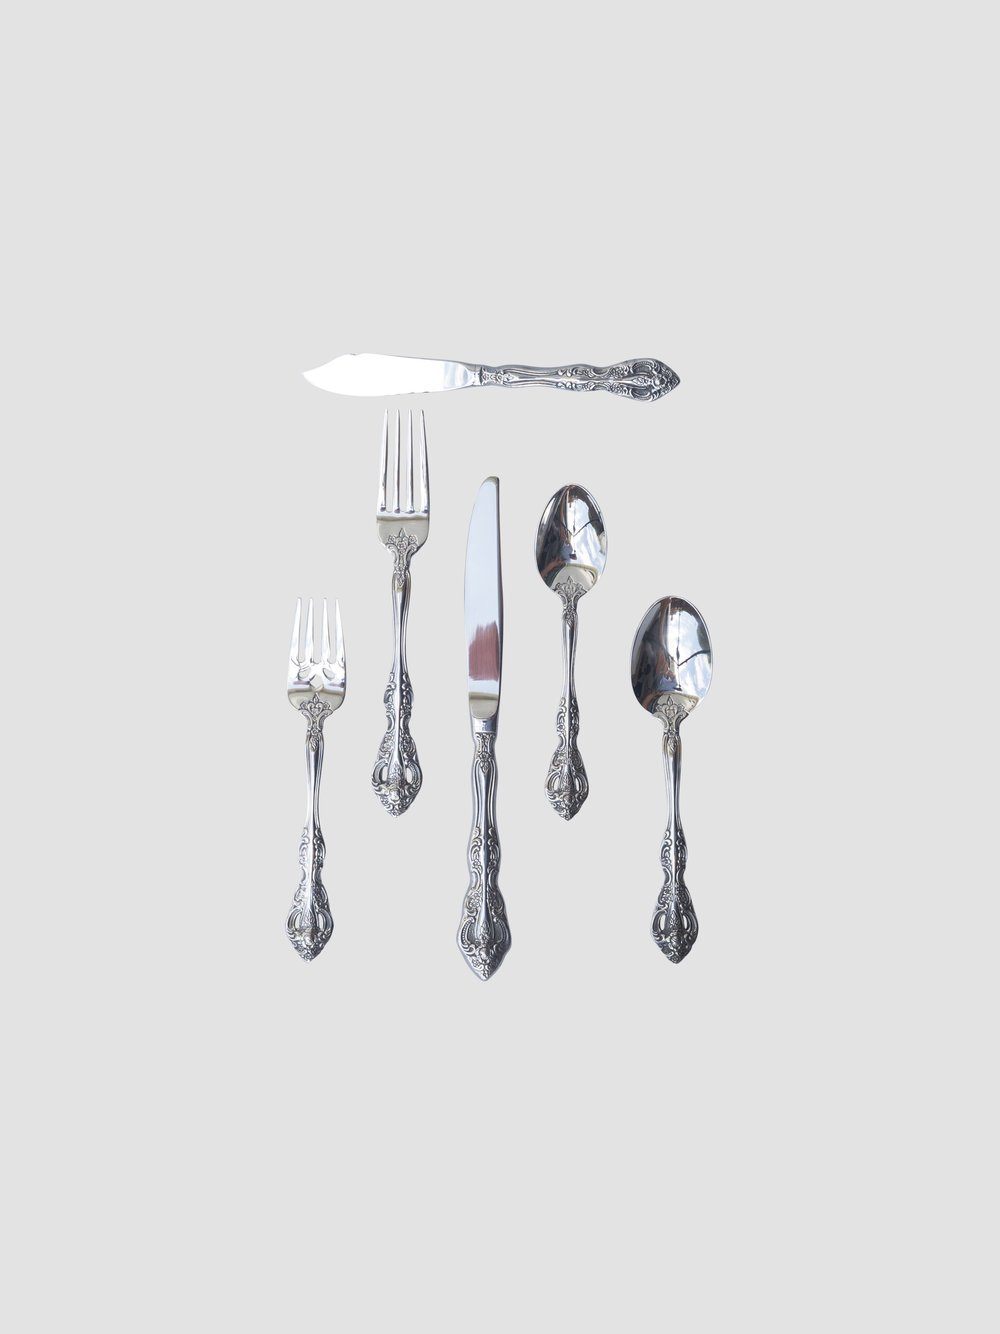 Butter Knife    Salad/Dessert Fork    Dinner Fork    Dinner Knife    Teaspoon    Dinner Spoon      *Additional course pieces available upon request